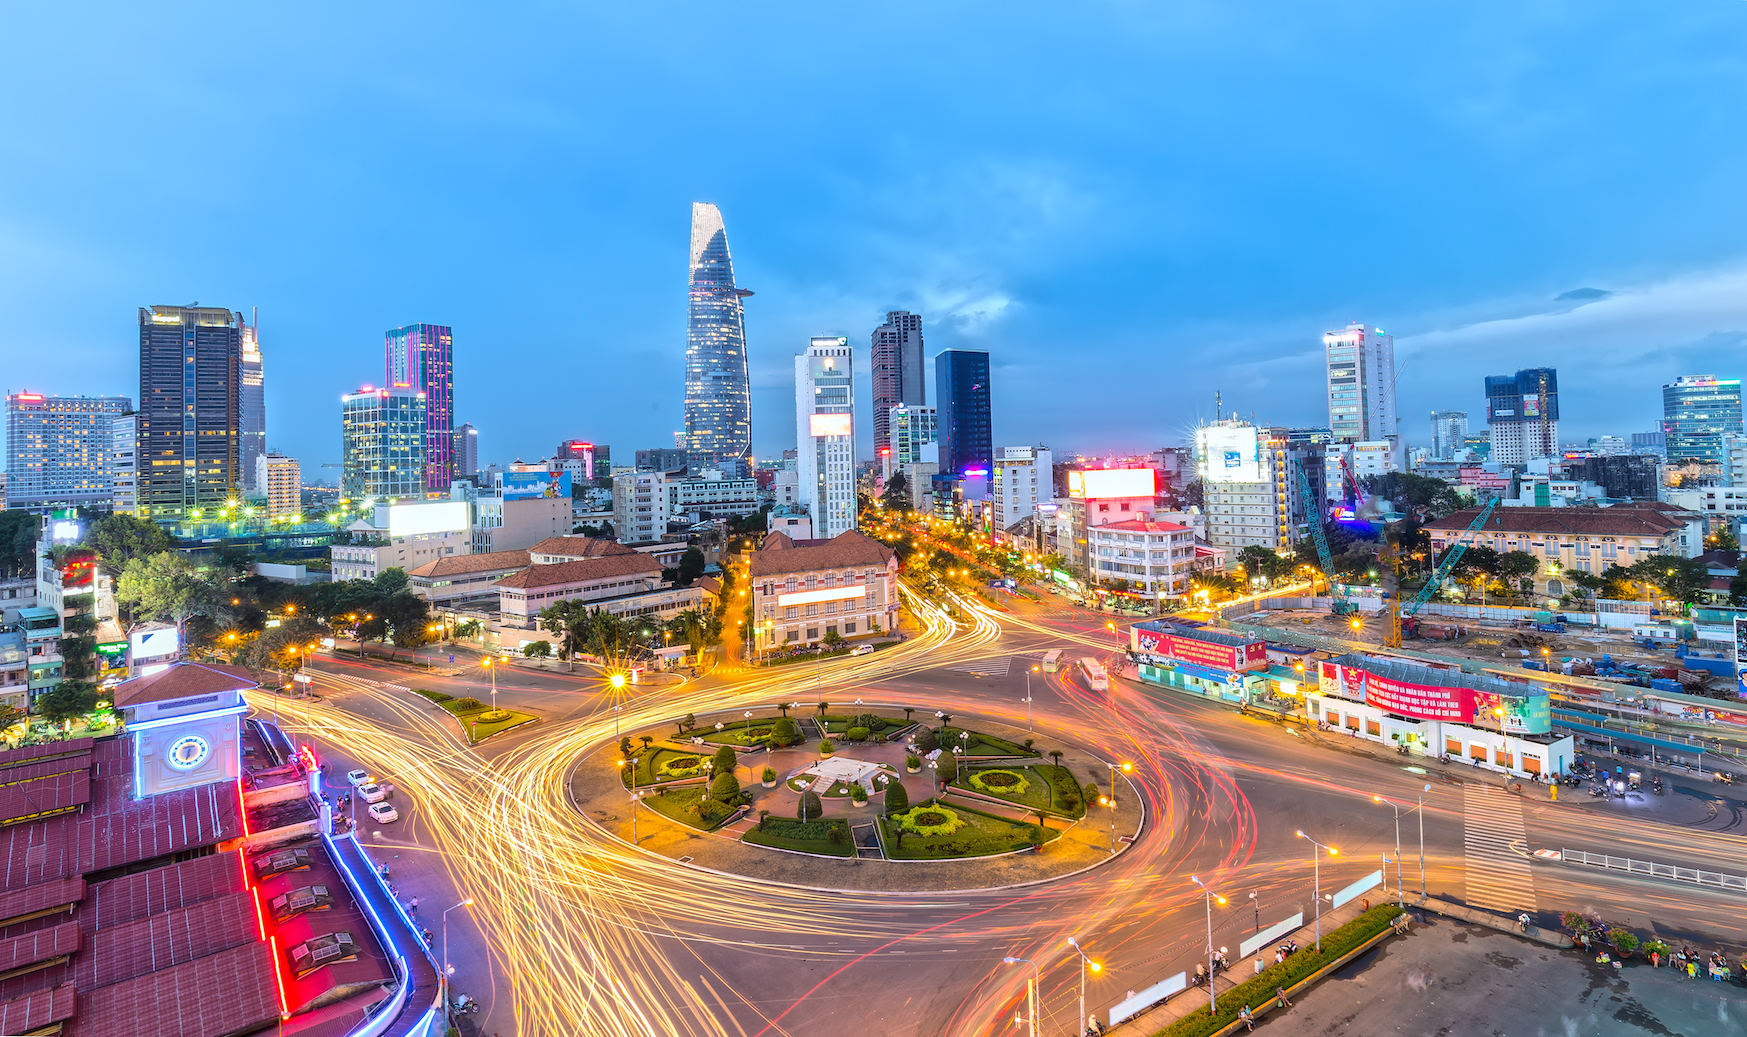 Future-focused: Vietnam's next decade looking bright